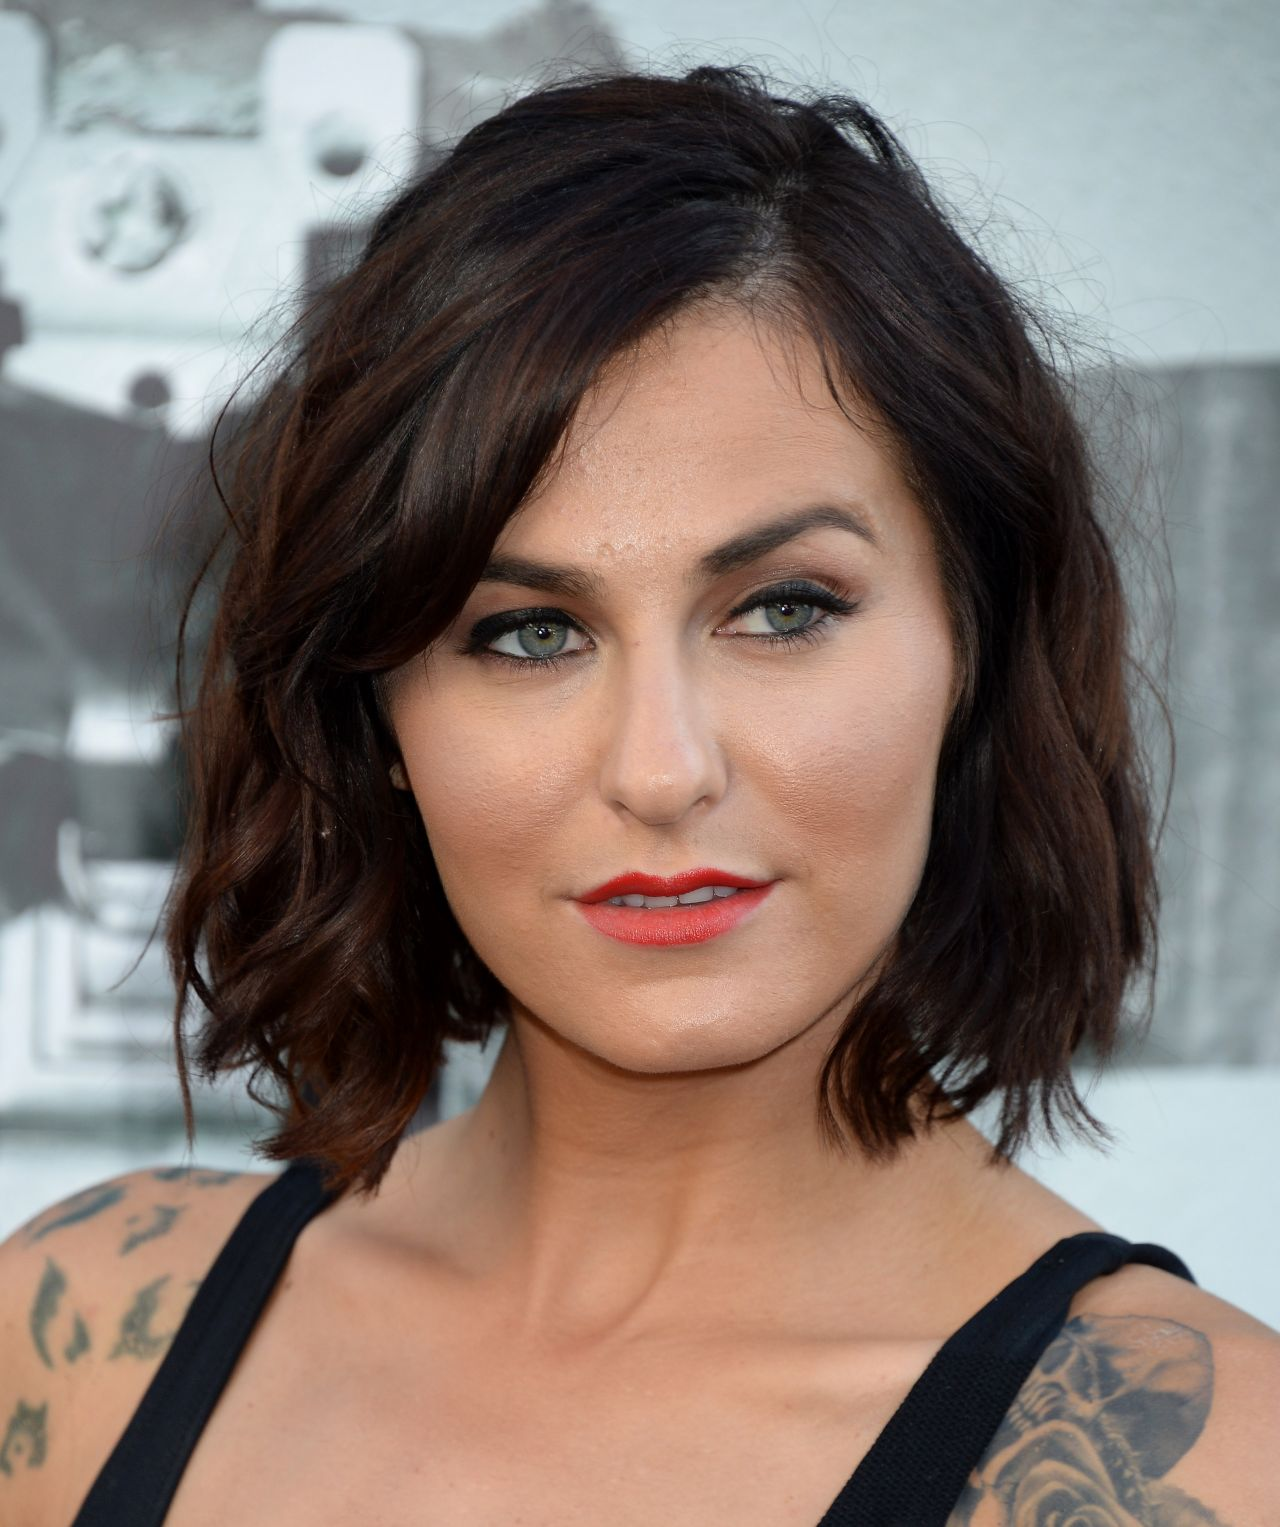 Watch Scout Taylor-Compton video